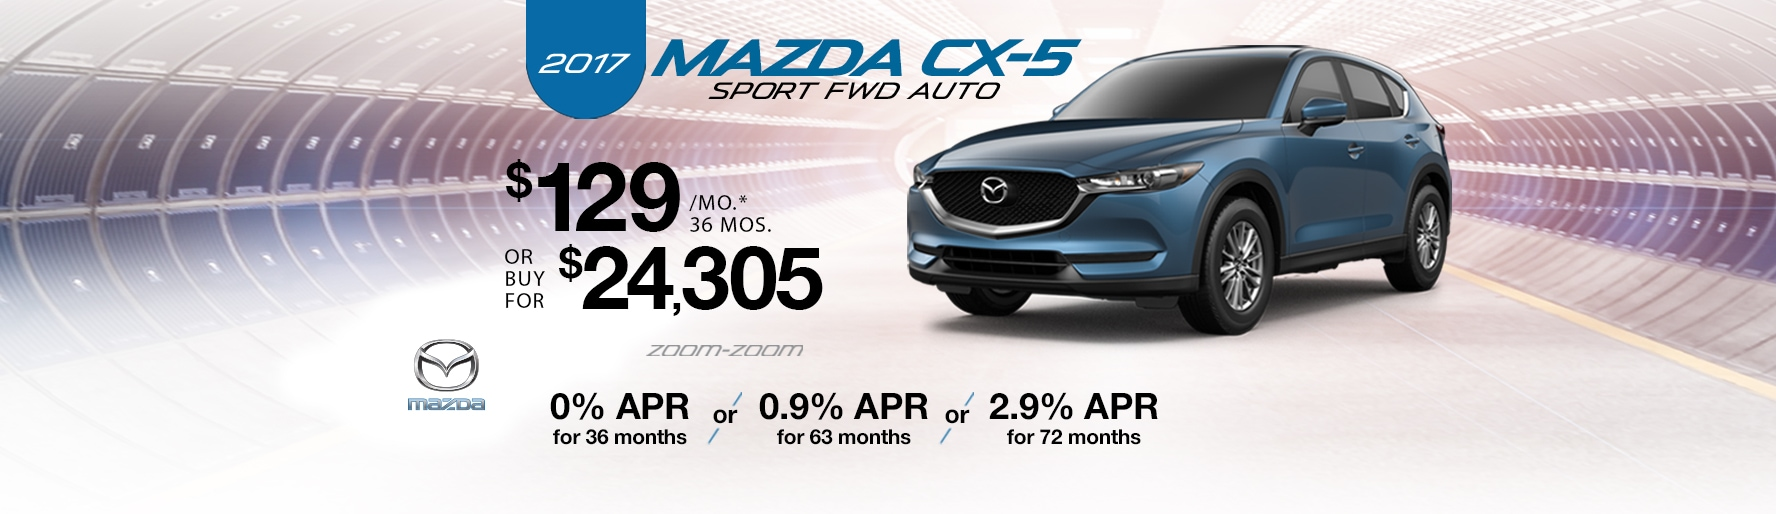 2017 Mazda CX-5 Sport FWD Auto Lease Special at Liberty Mazda